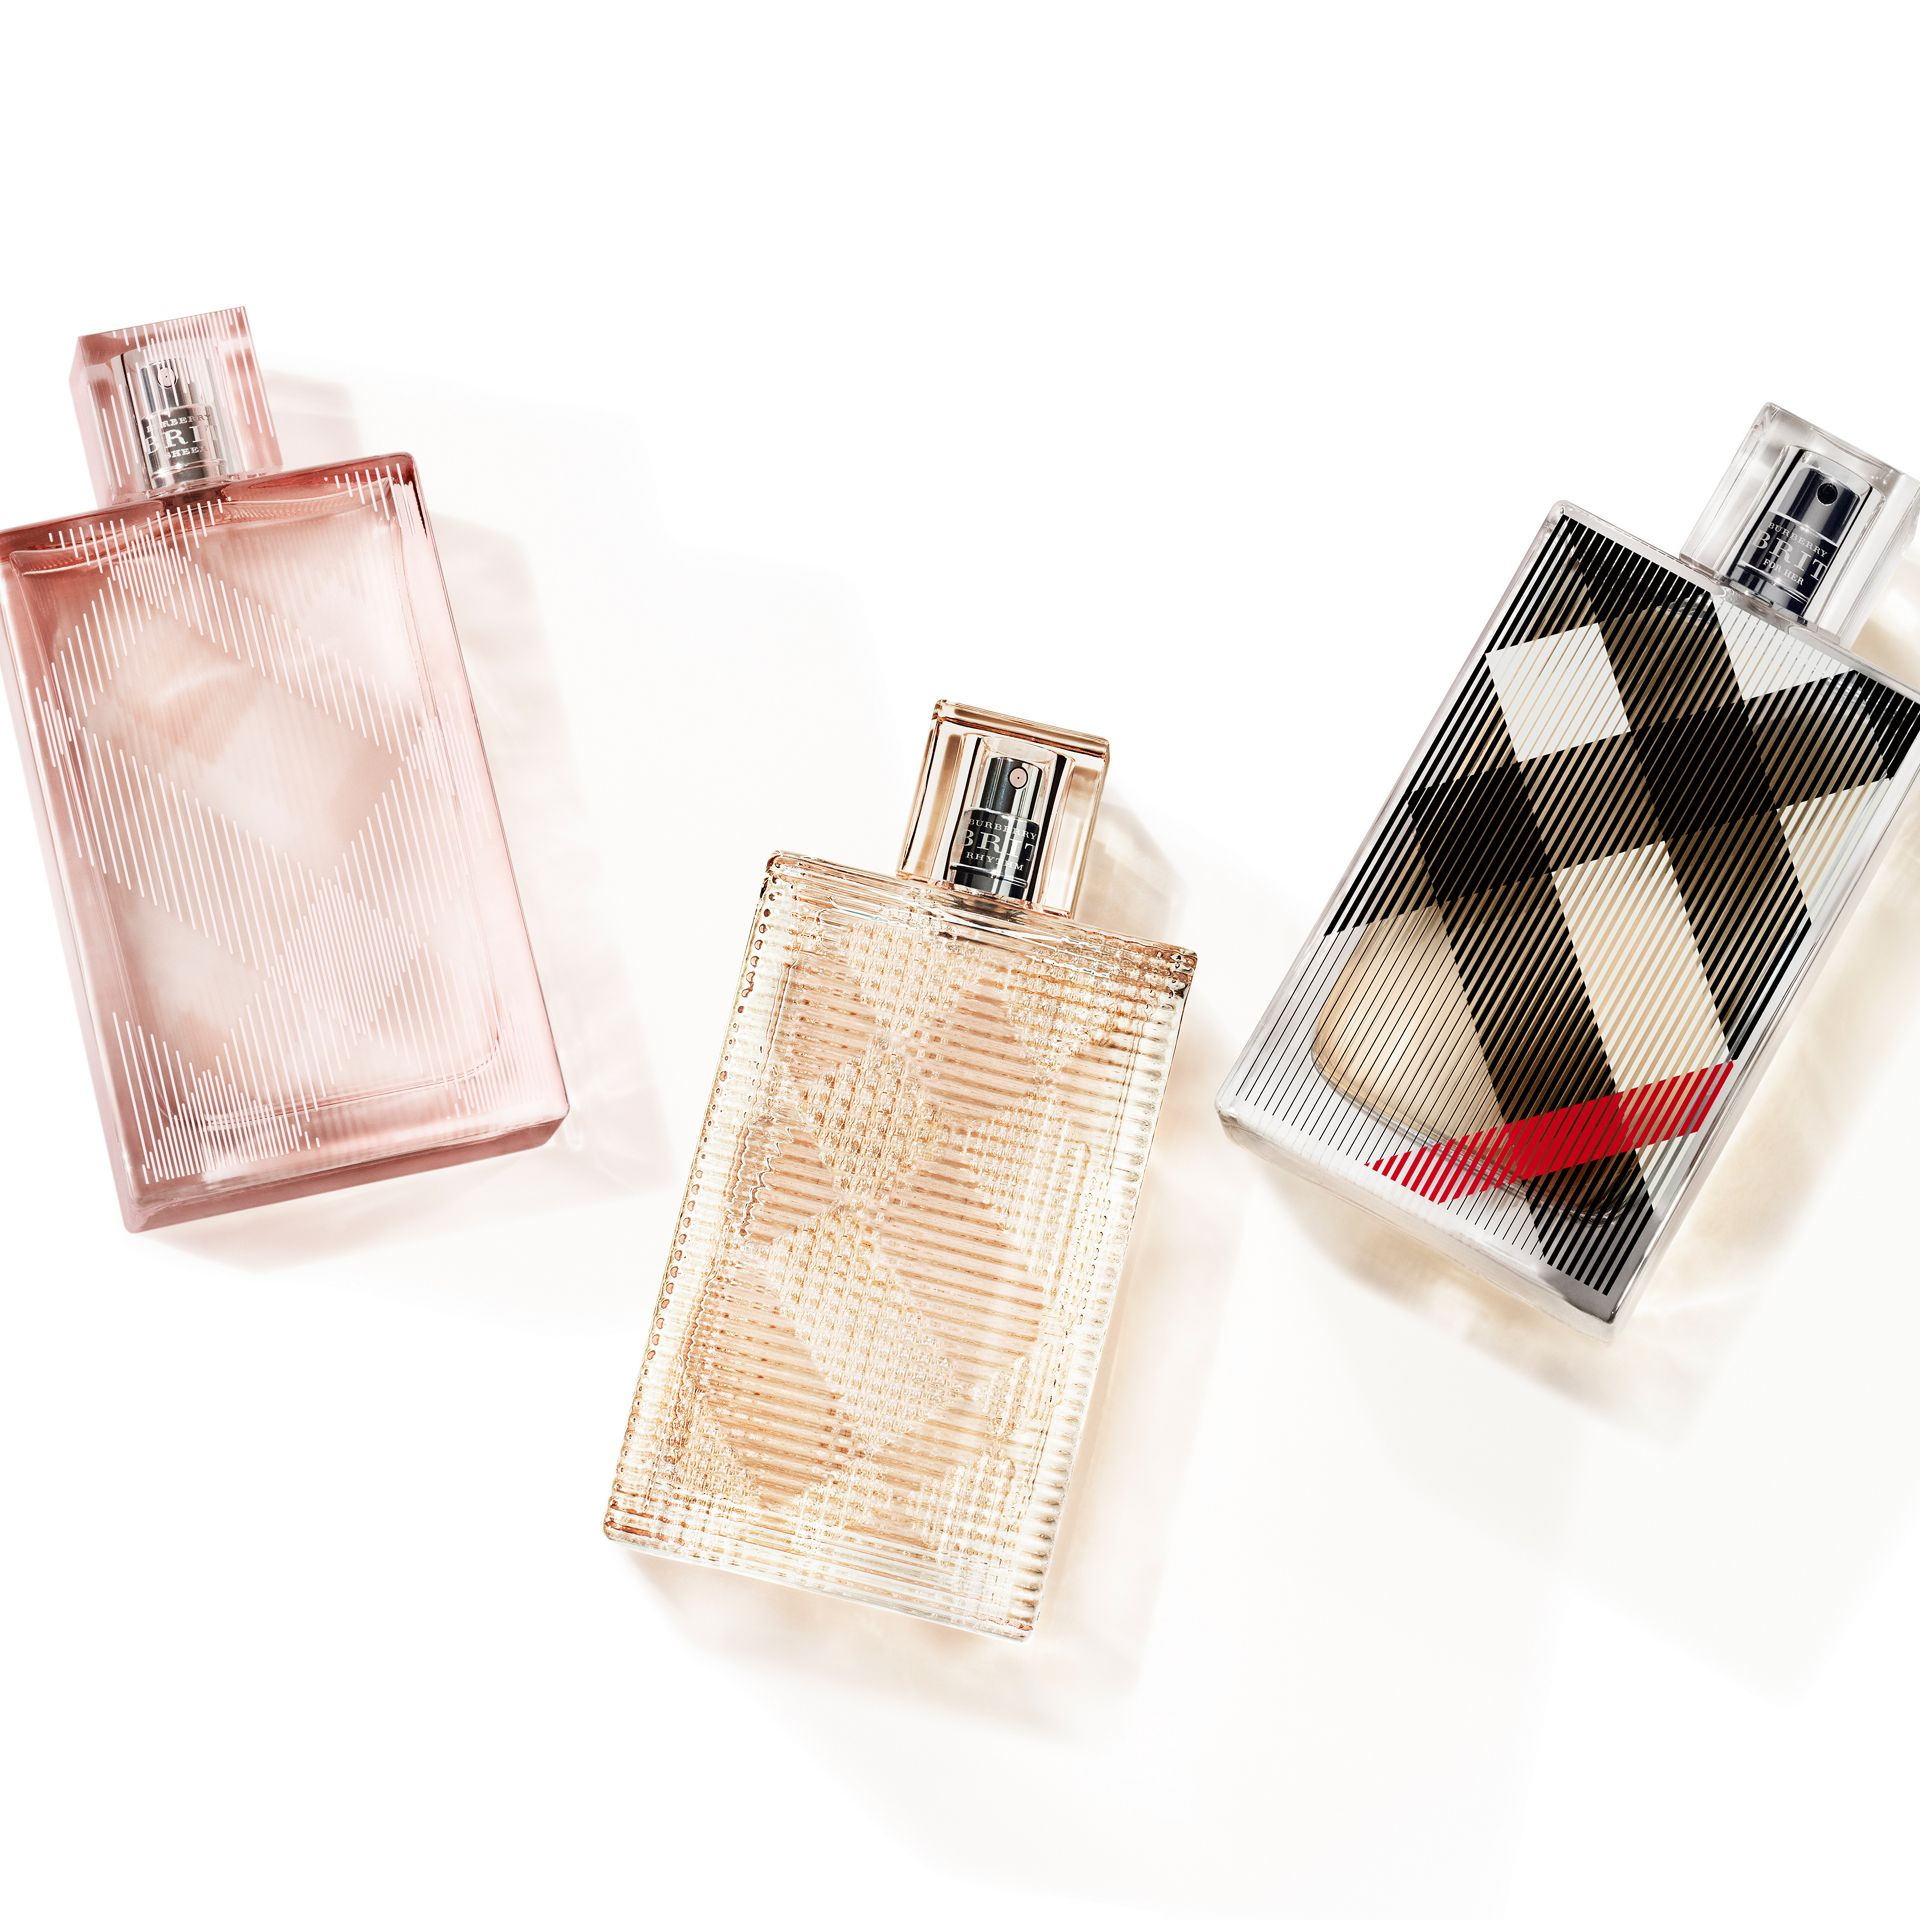 Eau de Toilette Burberry Brit Sheer 200 ml - Femme | Burberry - photo de la galerie 2